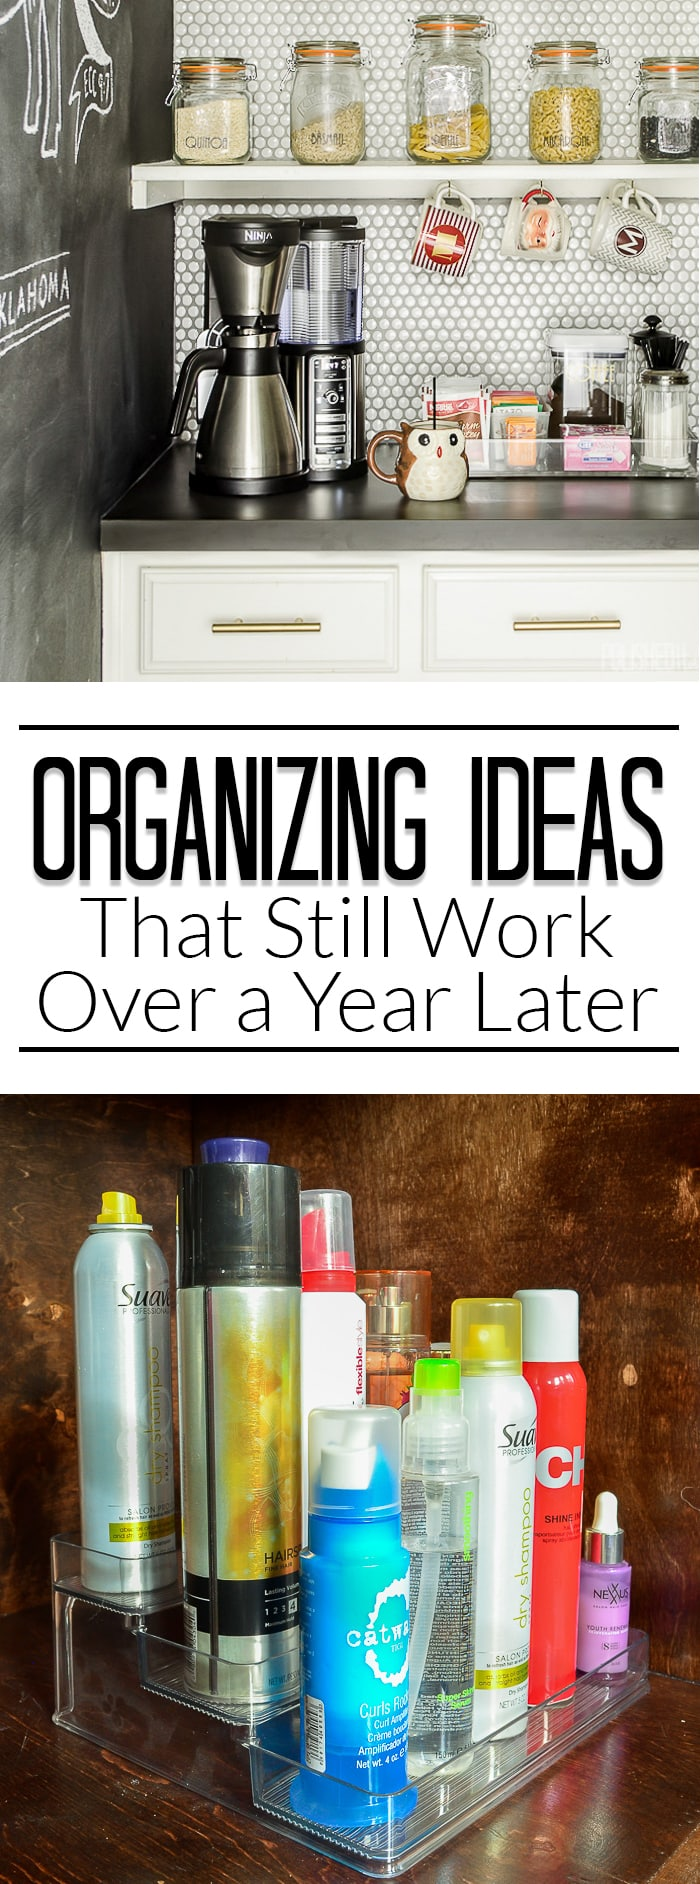 5 Quick & Easy Organizing Ideas That Stood the Test of Time - Over a year later, all these spaces are still organized, even with daily use!